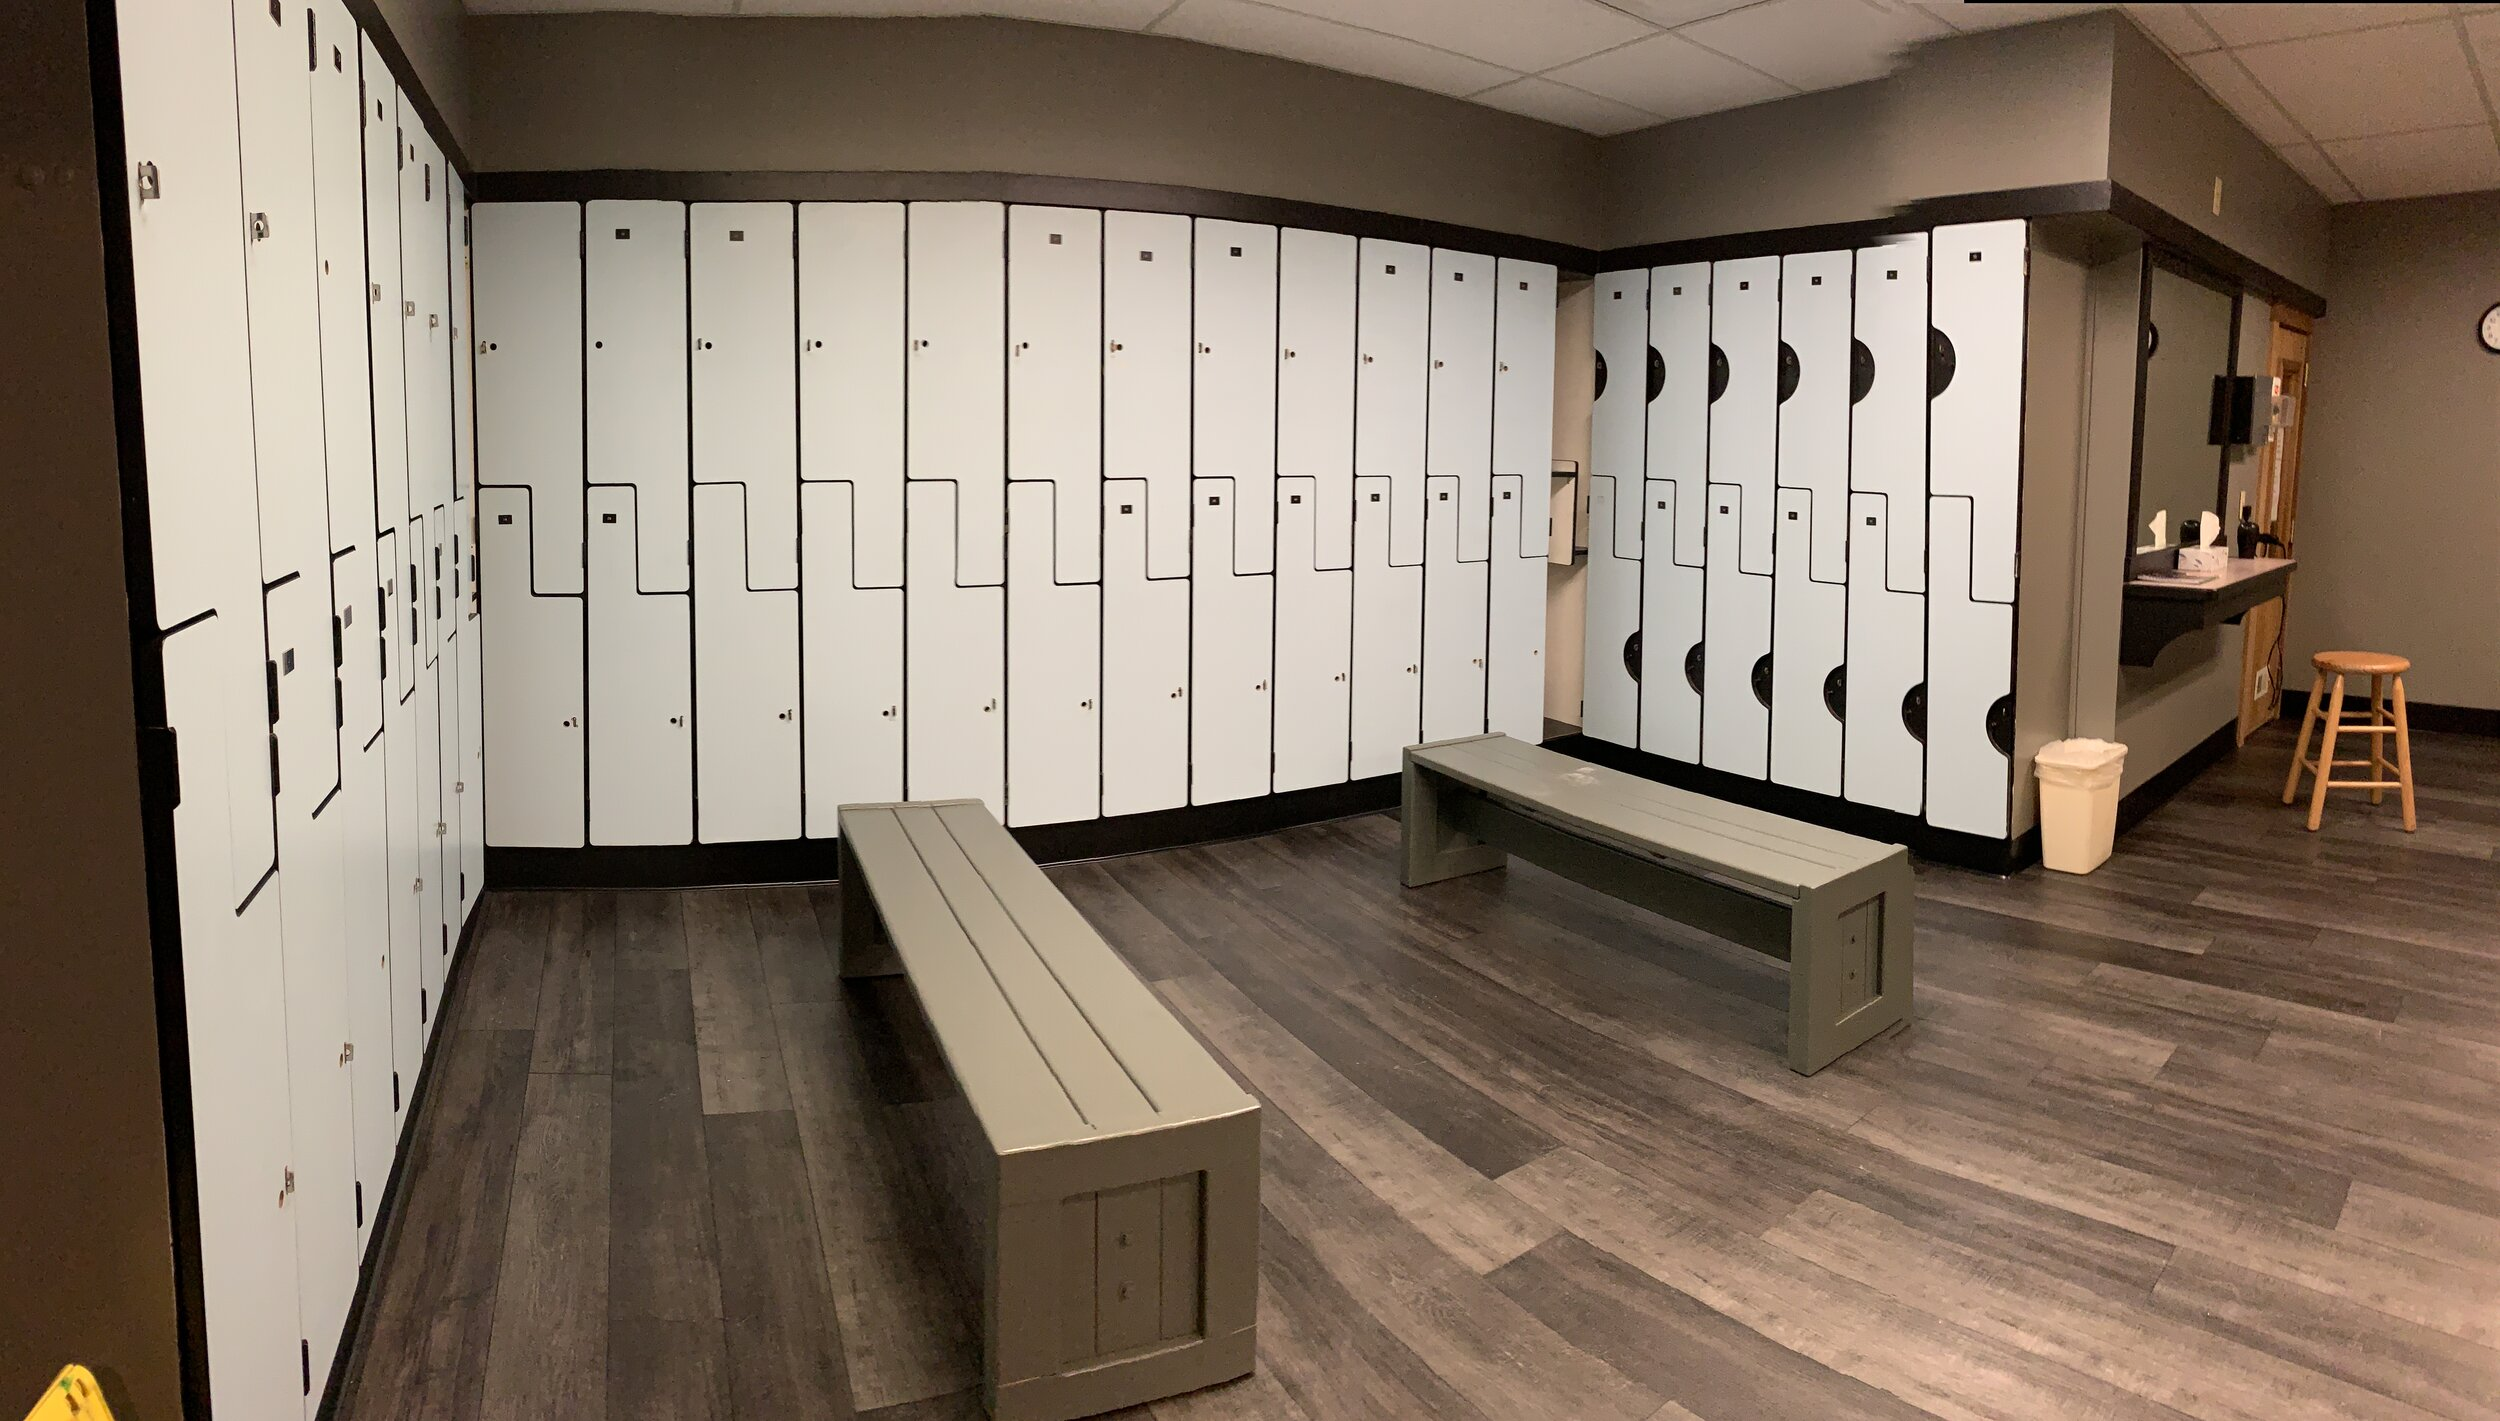 Ladies' locker room